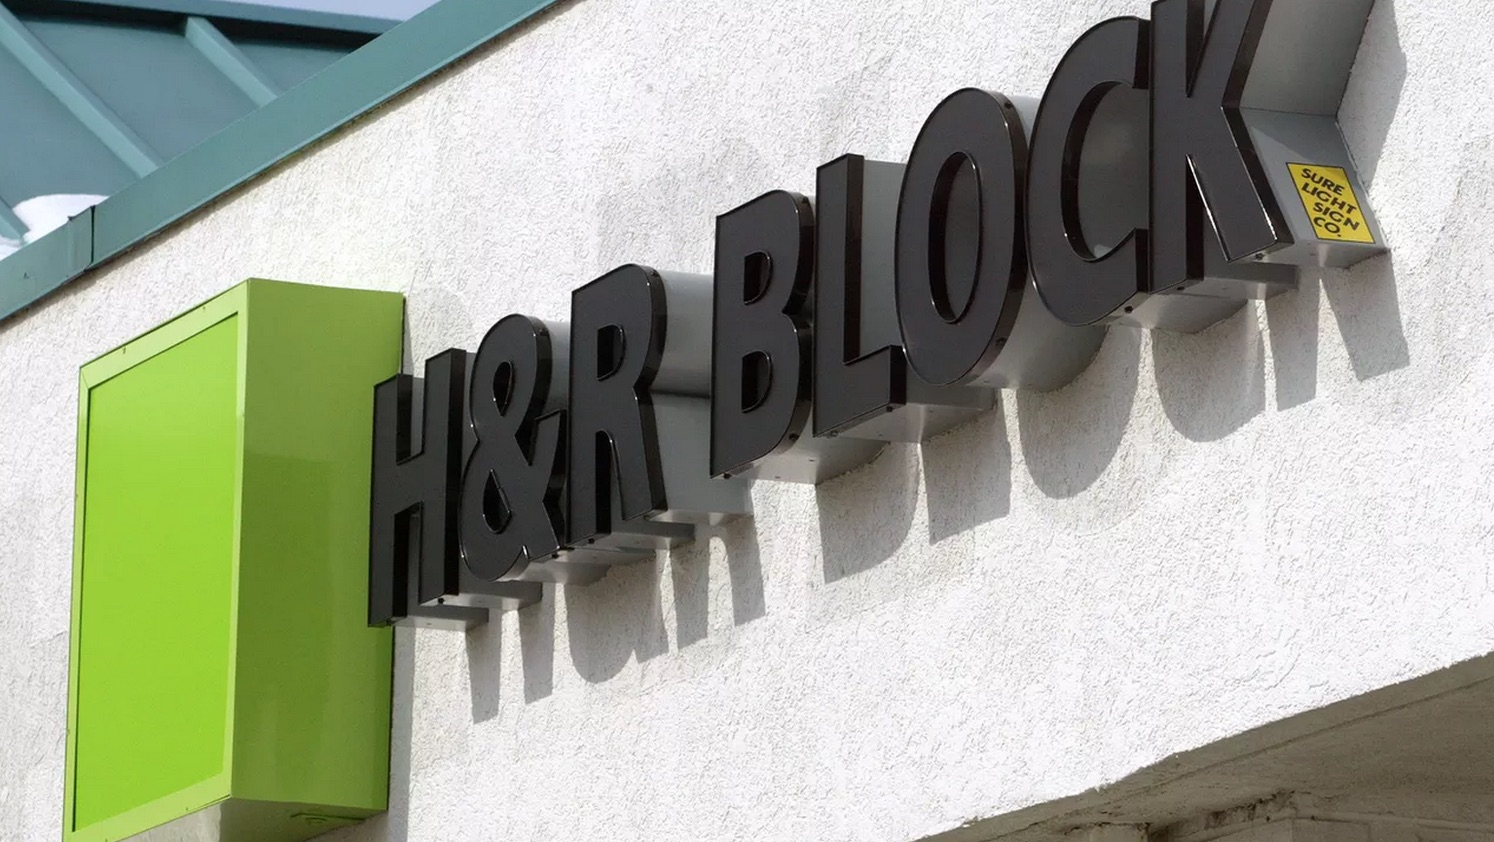 H&R Block snuck language into a Senate bill to make taxes more Confusing